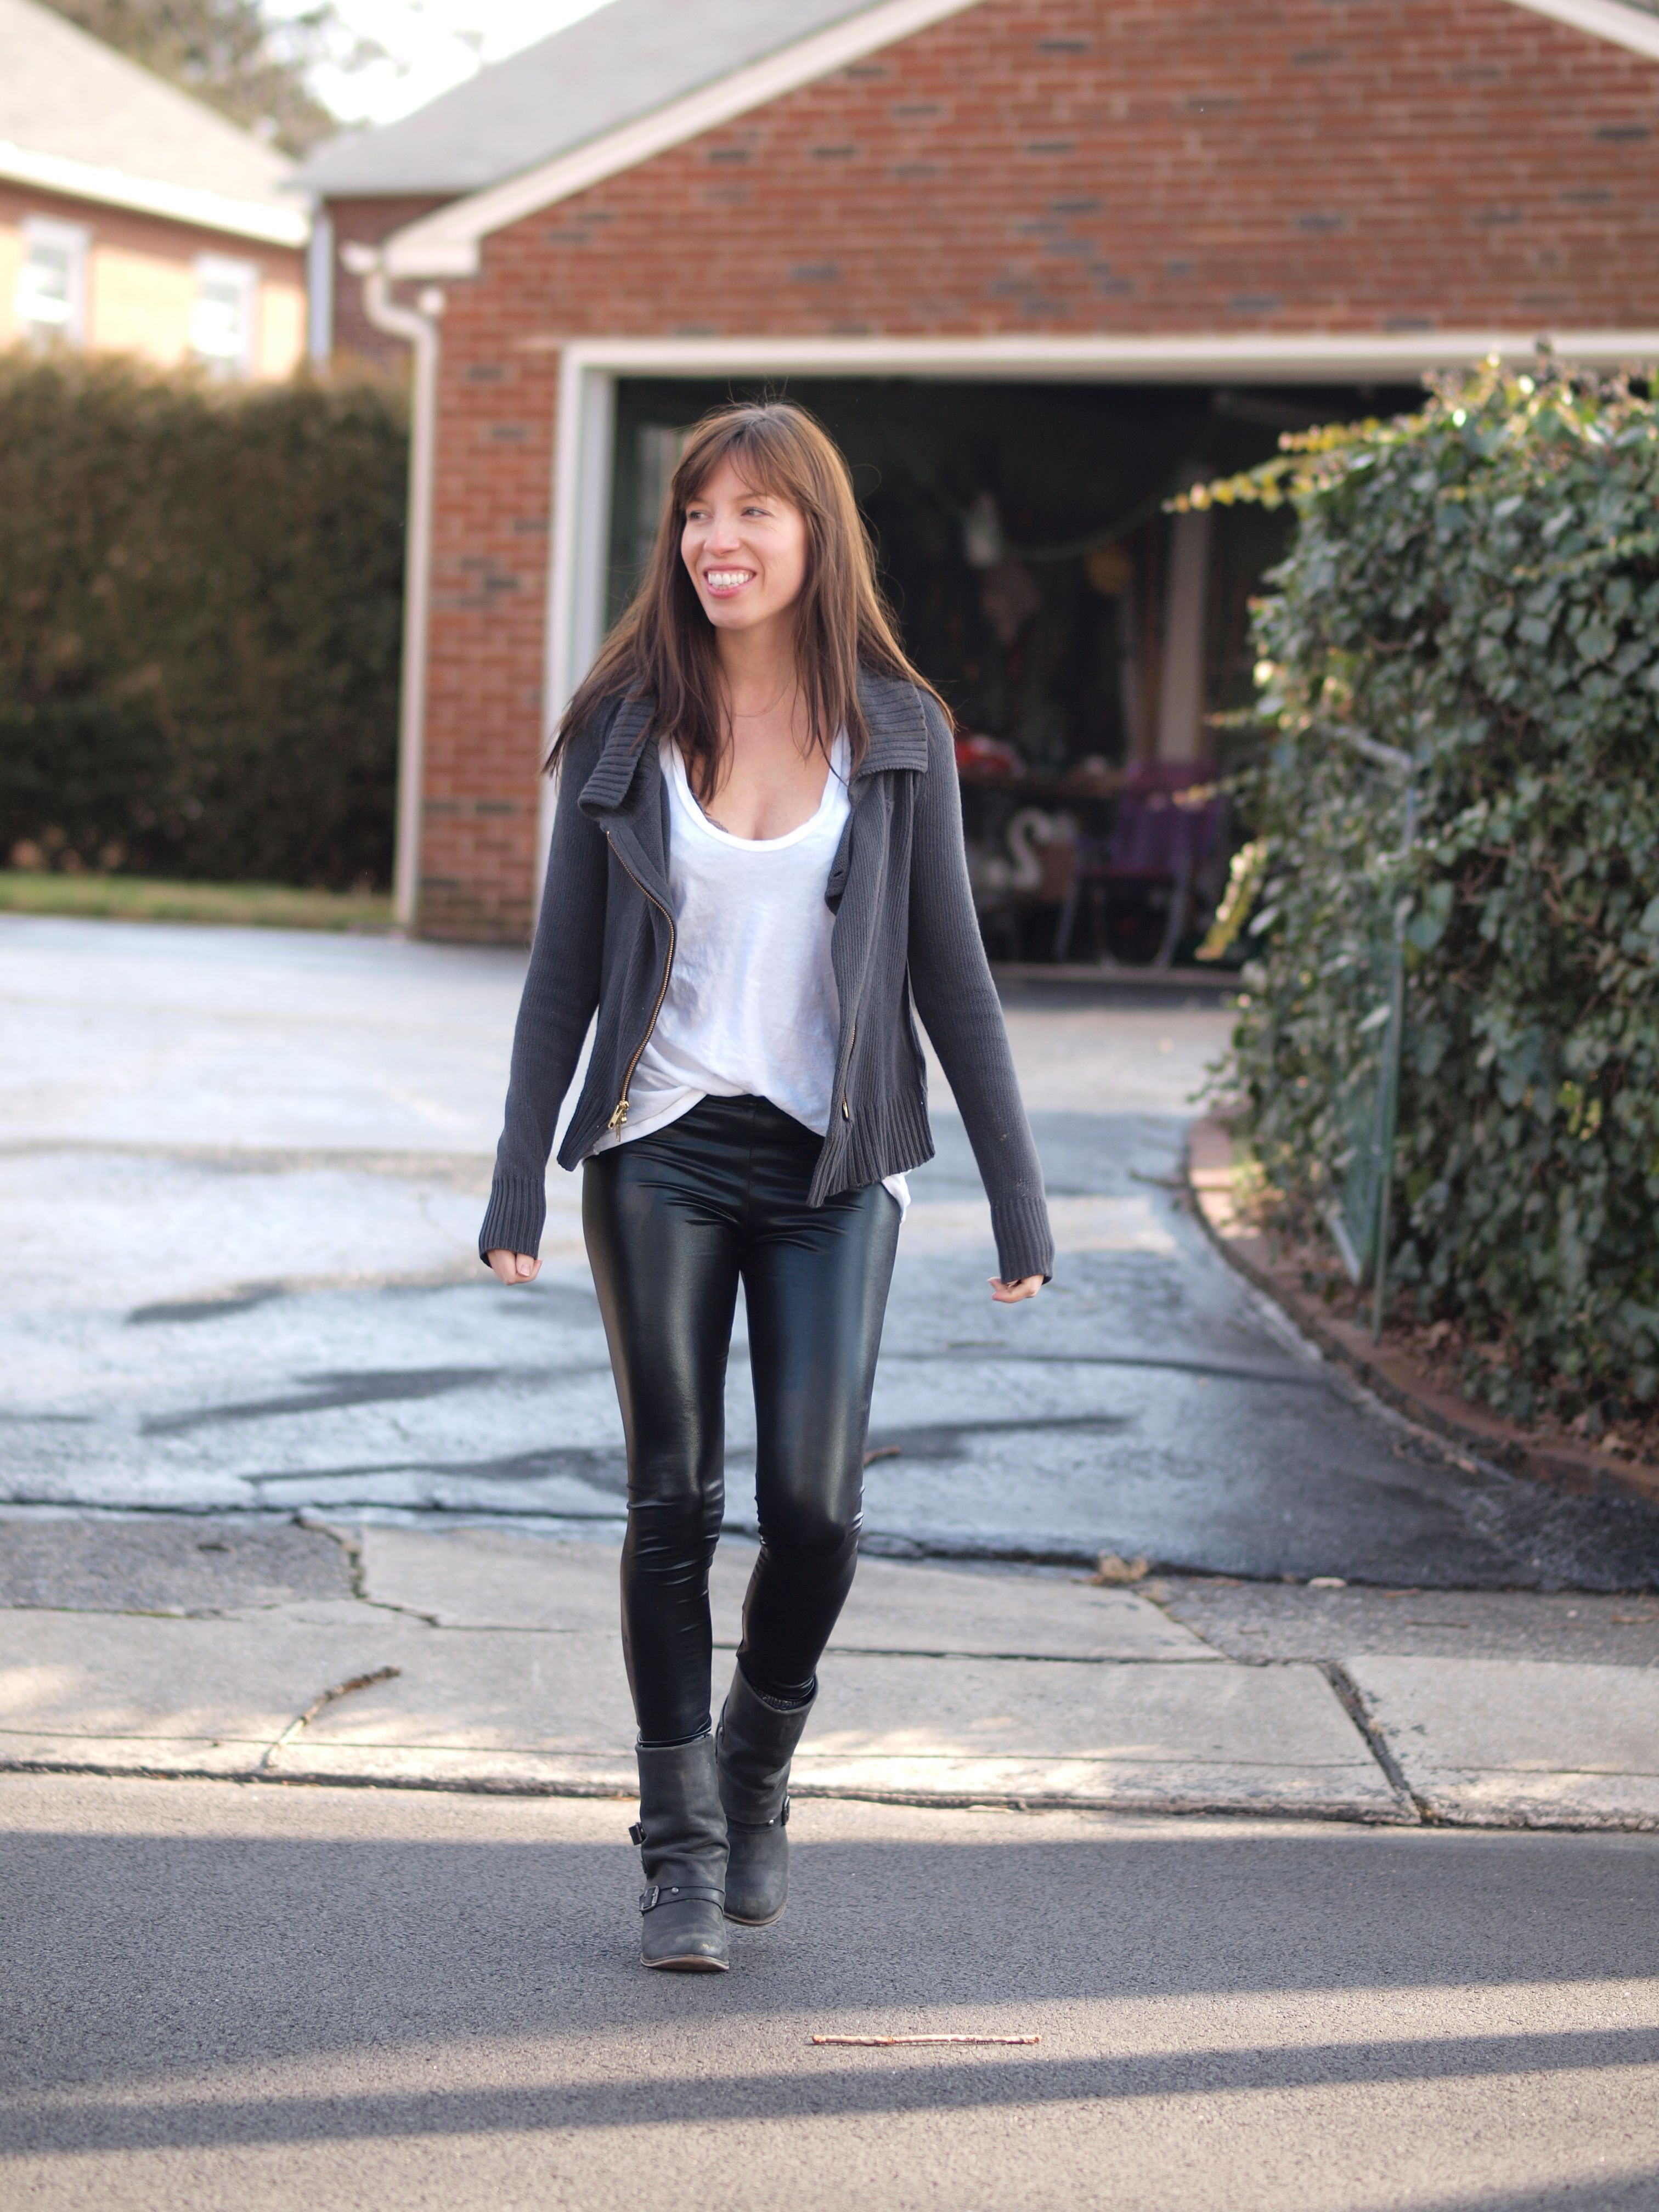 No She Didn't!! Leather Pants (...aaaand an alternative ...